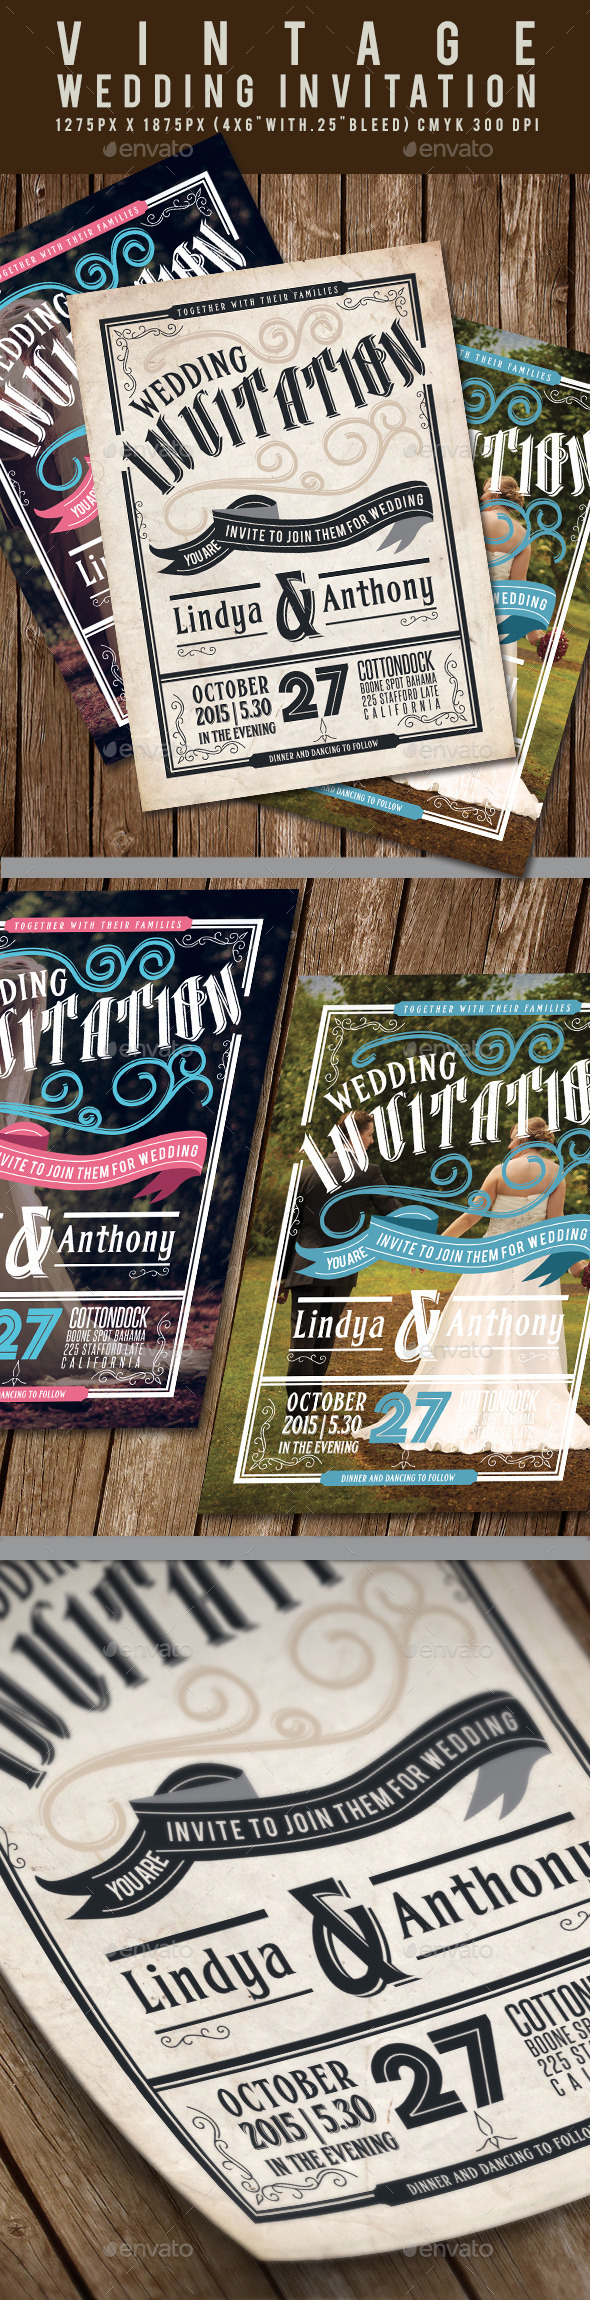 GraphicRiver Vintage Wedding Invitation 11969275